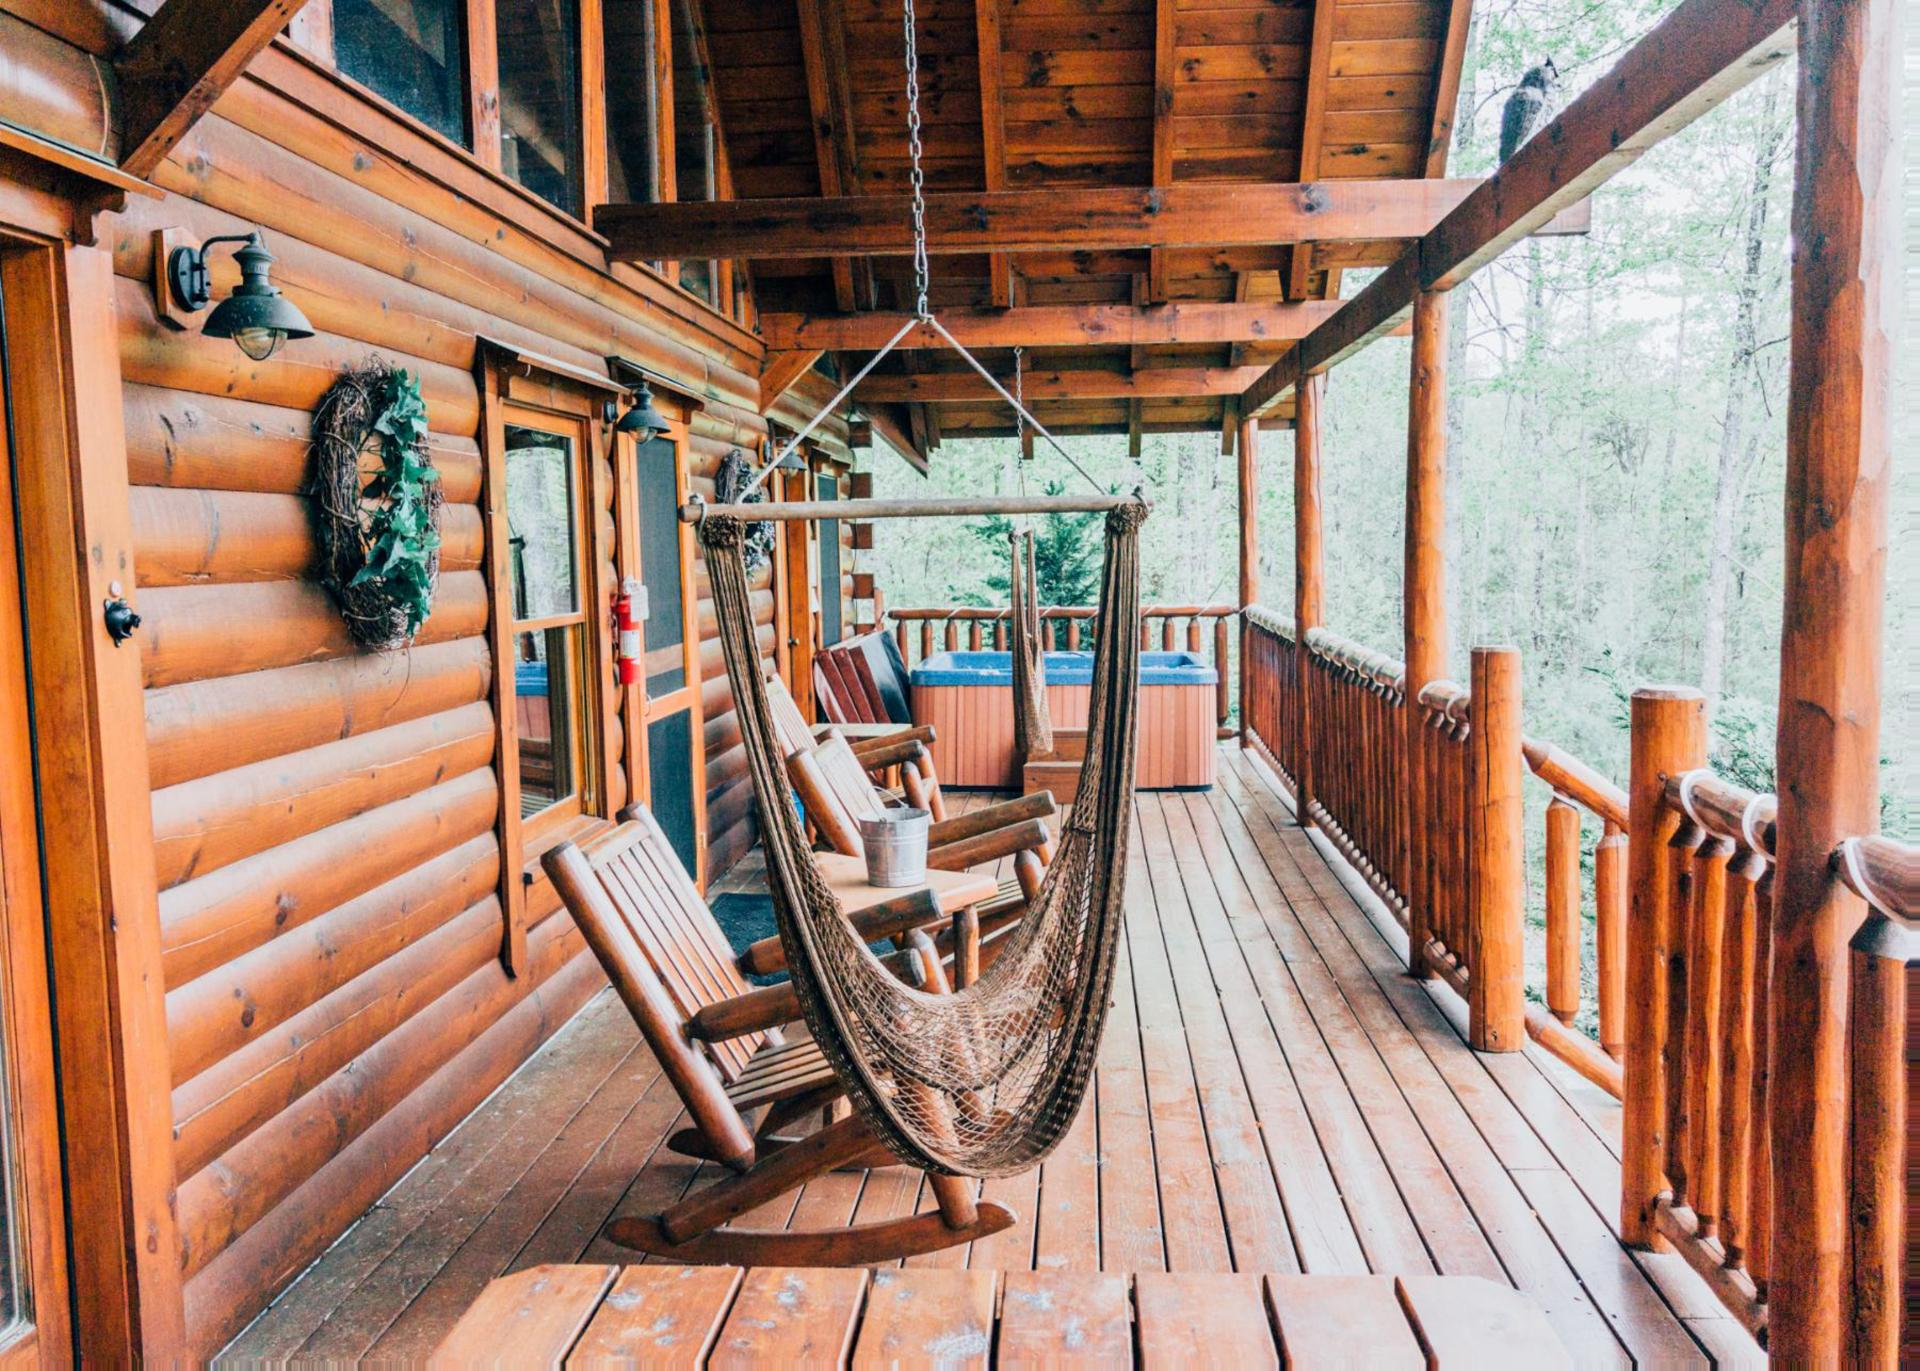 property st north bear welcome located feliciana in recreation cabins with is hunting premier just hot home louisiana tract west kind saint timberland francisville big la tubs acreage to one a of properties cabin